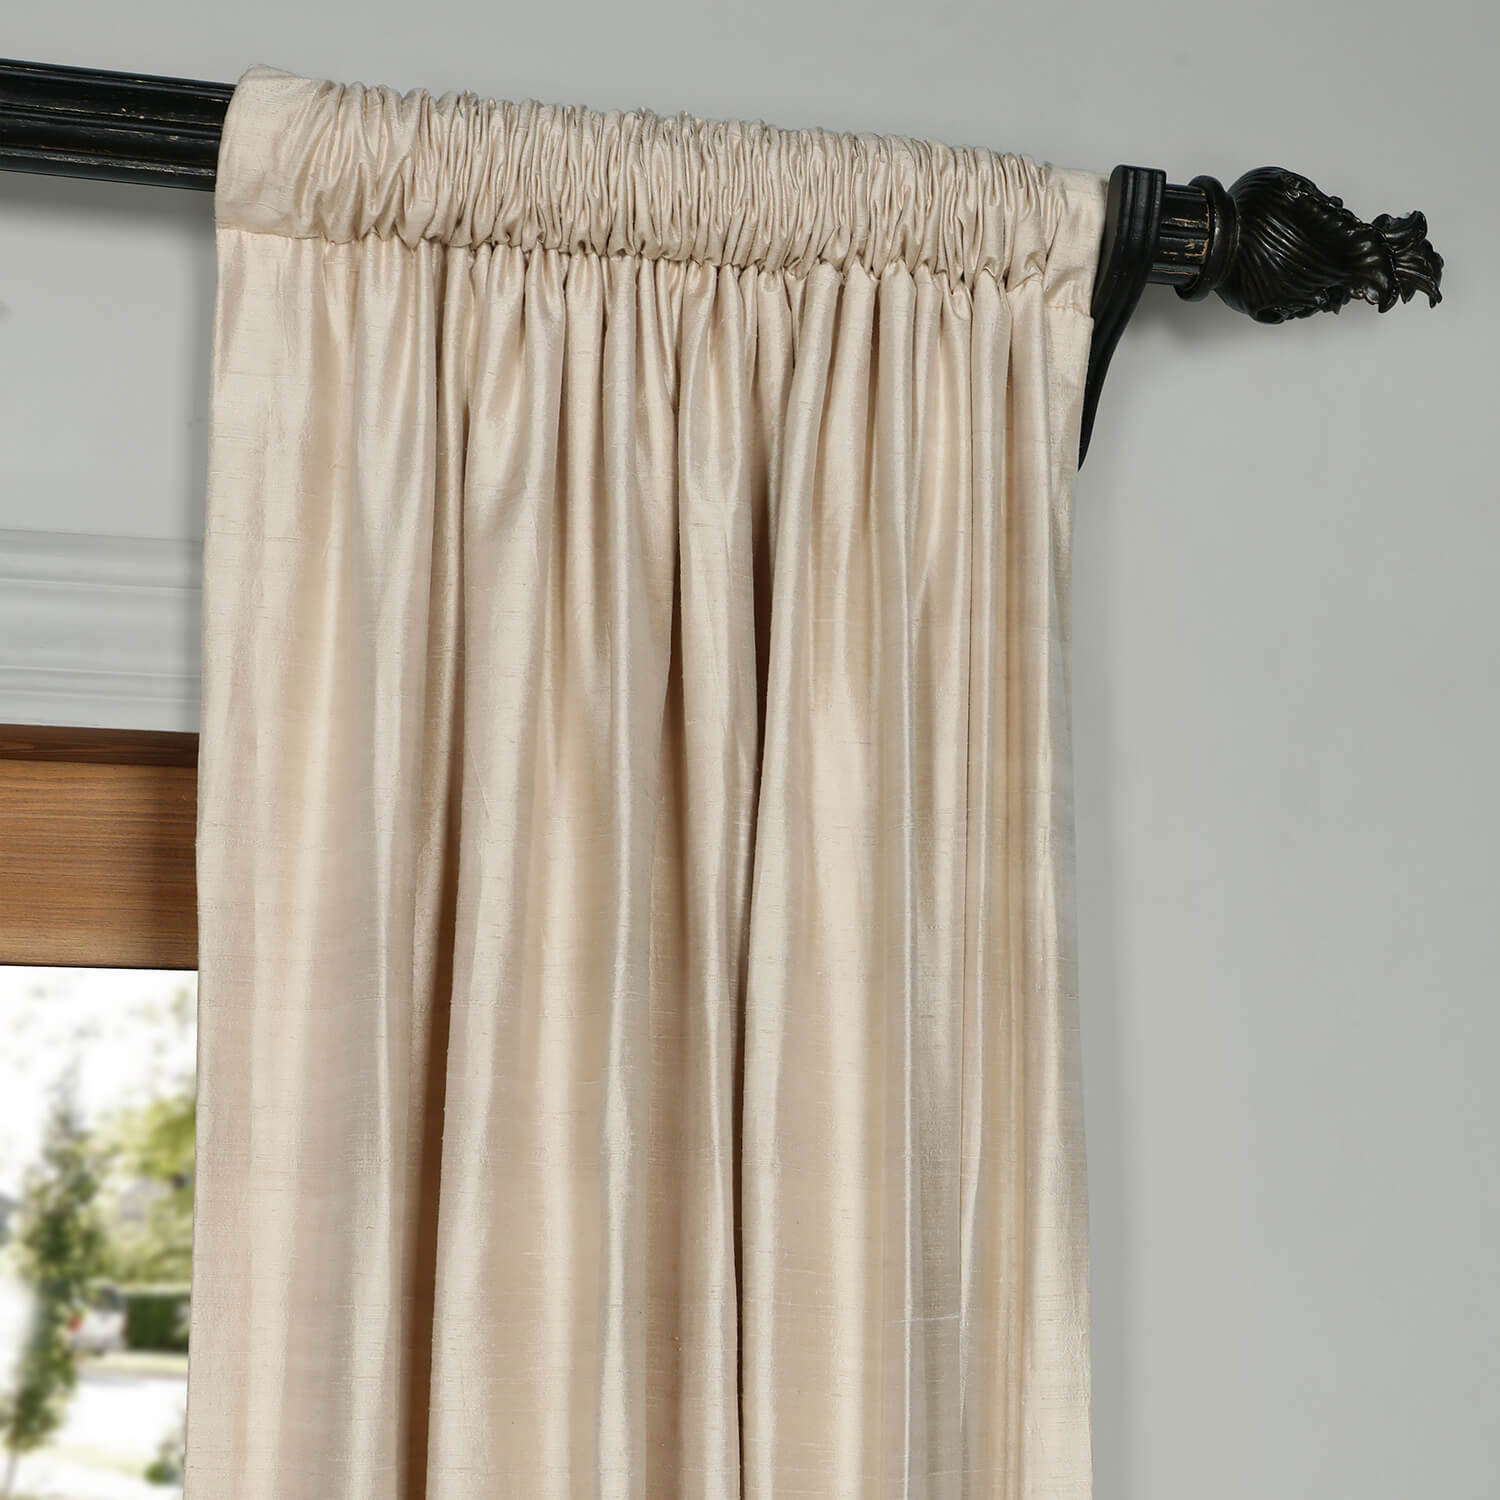 Biscuit Beige Textured Dupioni Silk Curtain